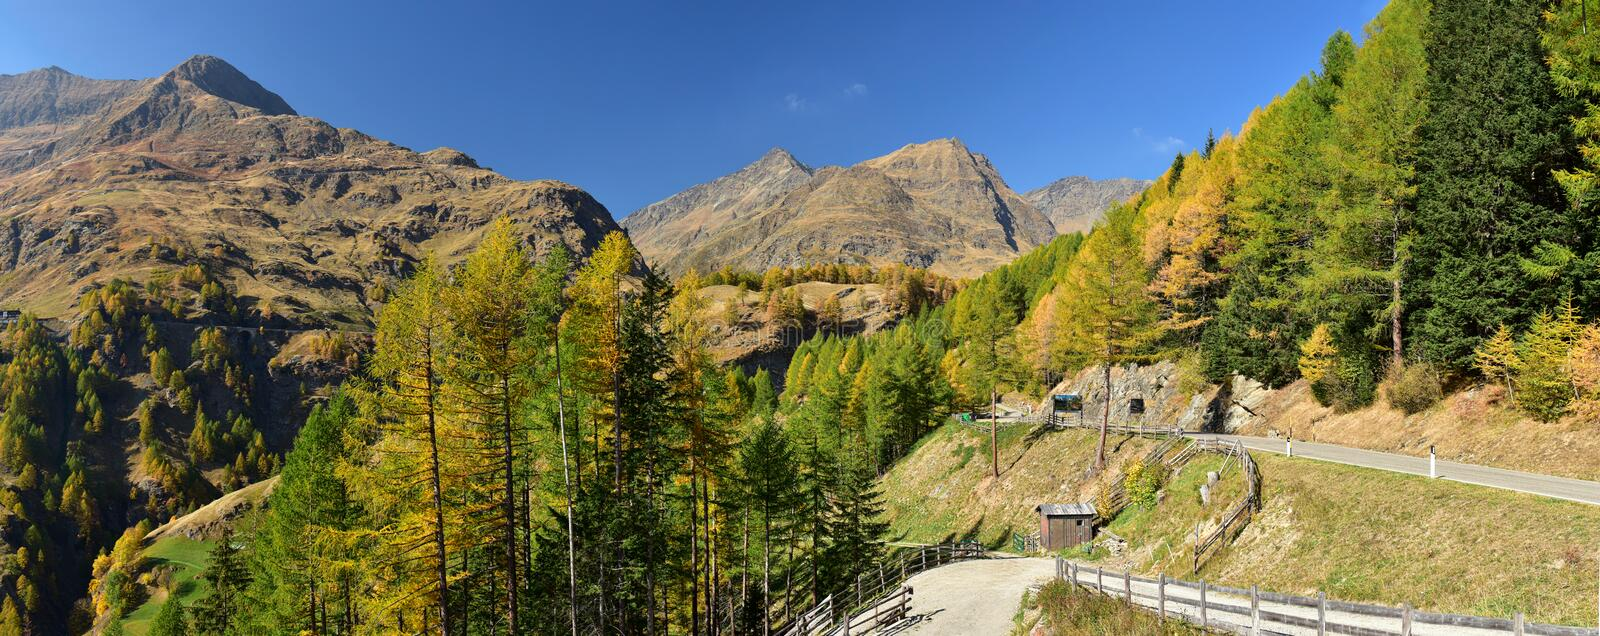 Panoramic view of the Stubai Alps from Timmelsjoch high alpine road. South Tyrol, Italy royalty free stock images